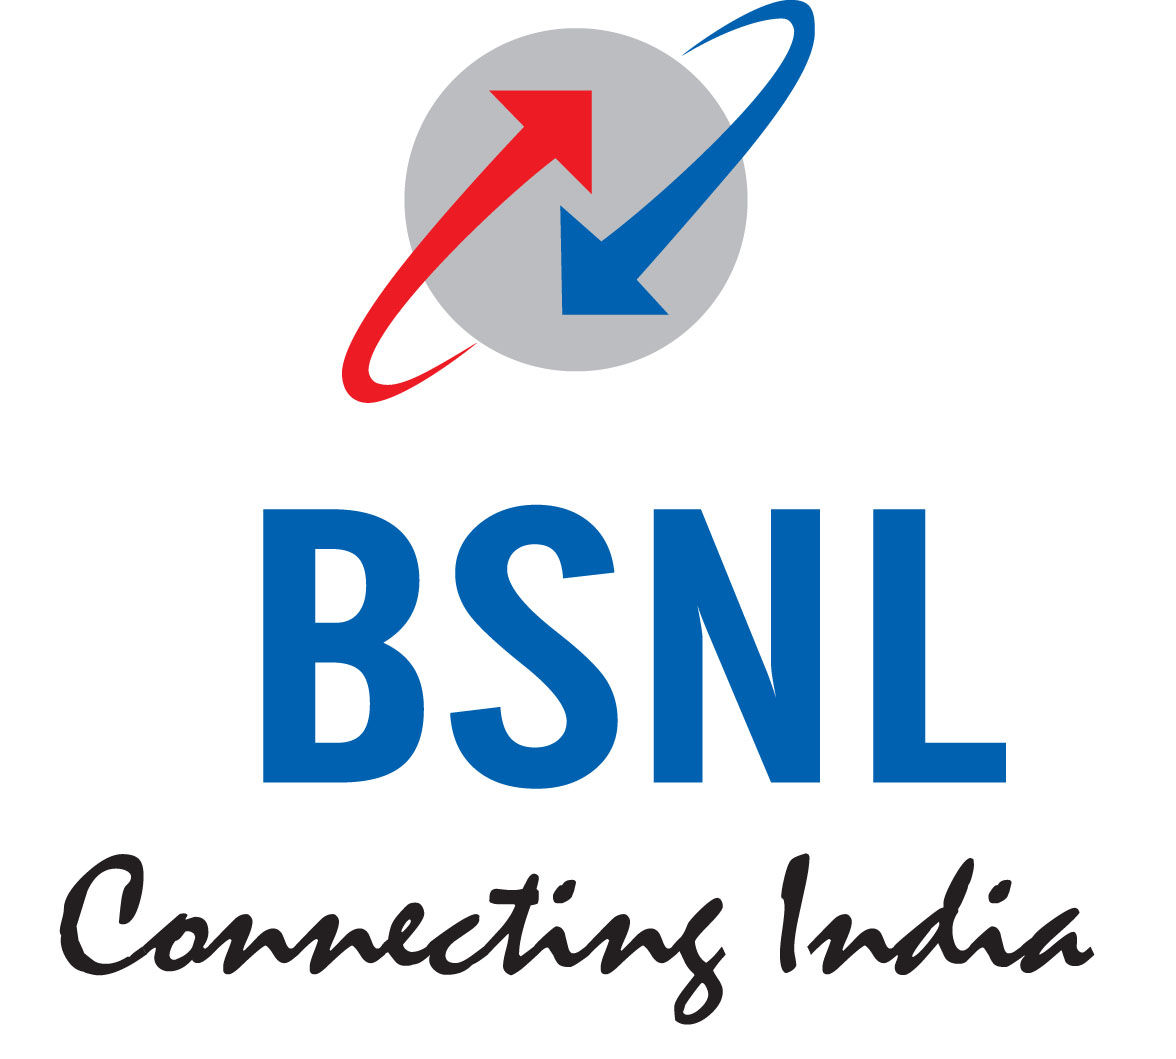 BSNL has introduced Rs 398 prepaid plan with truly unlimited data and calling benefits